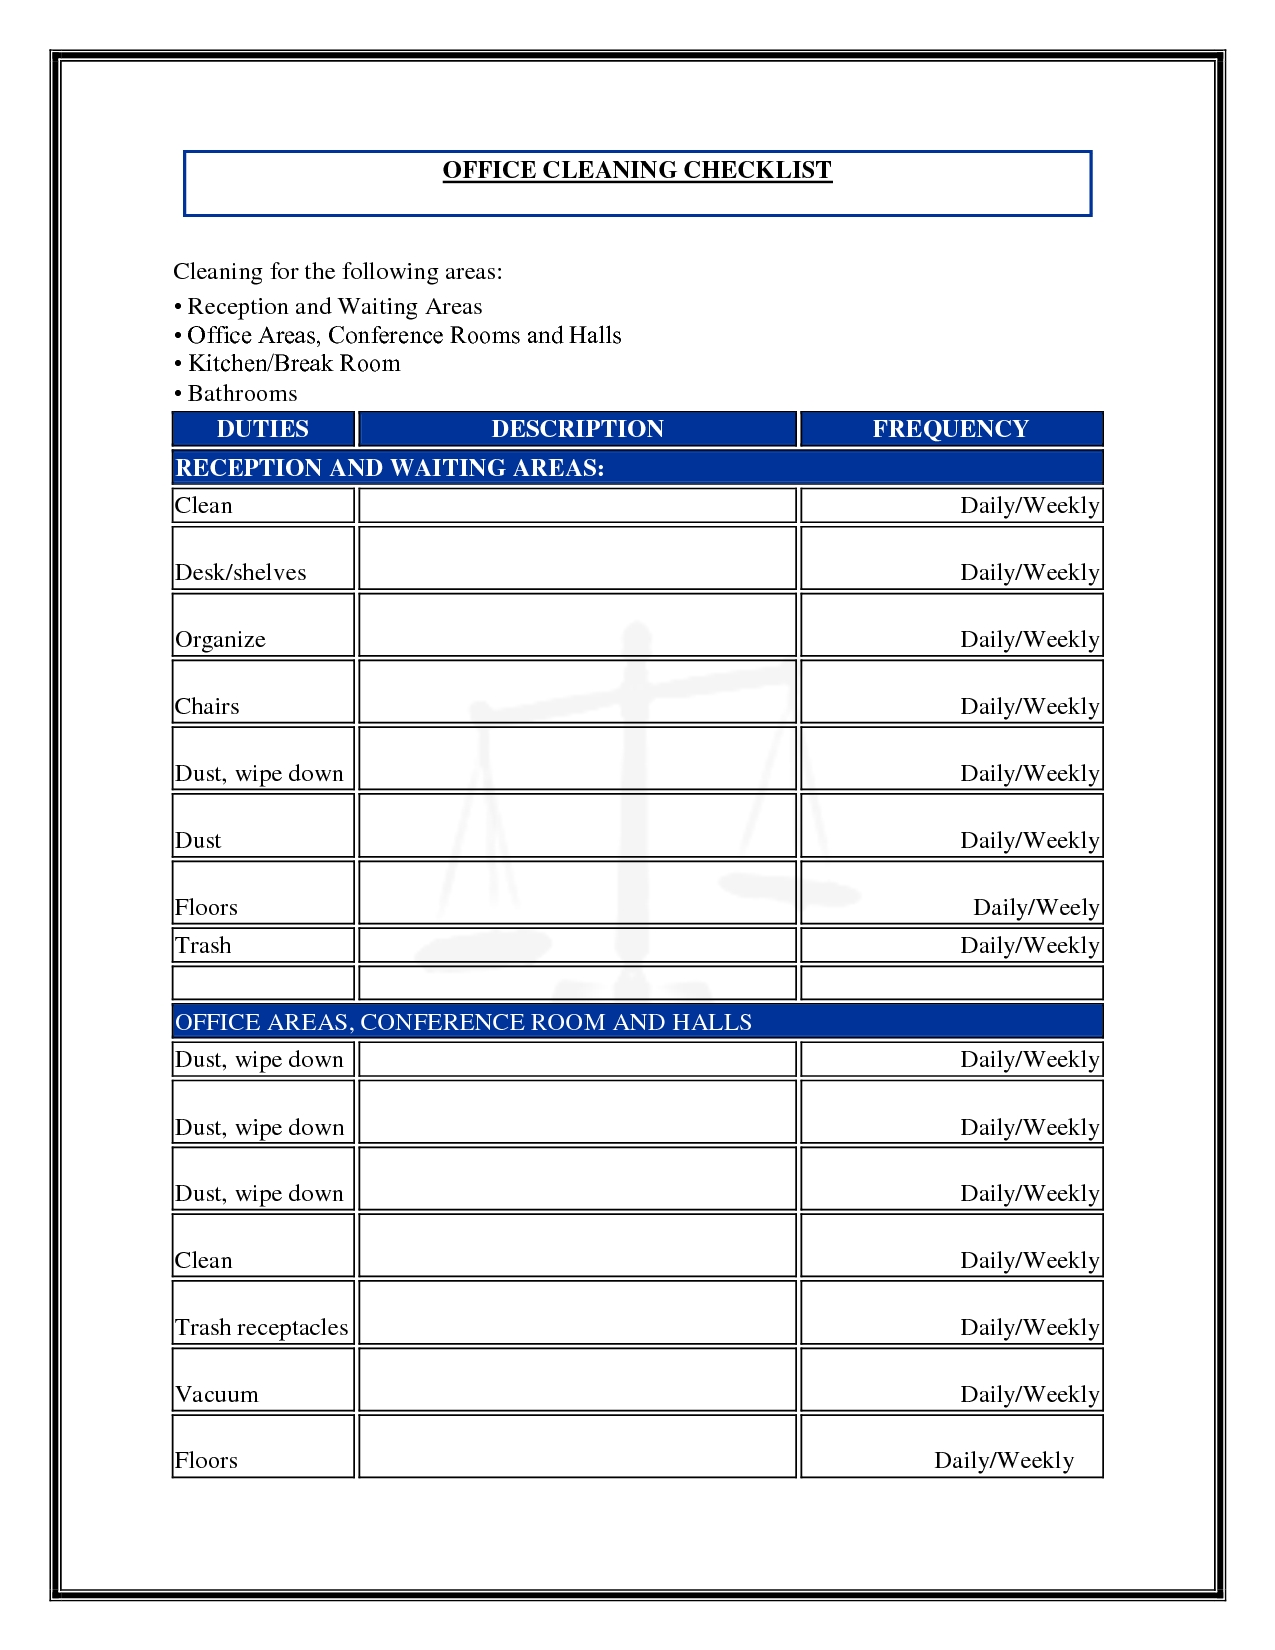 Daily Office Cleaning Checklist And Schedule Template Sample throughout Office Daily Checklist Template 24143